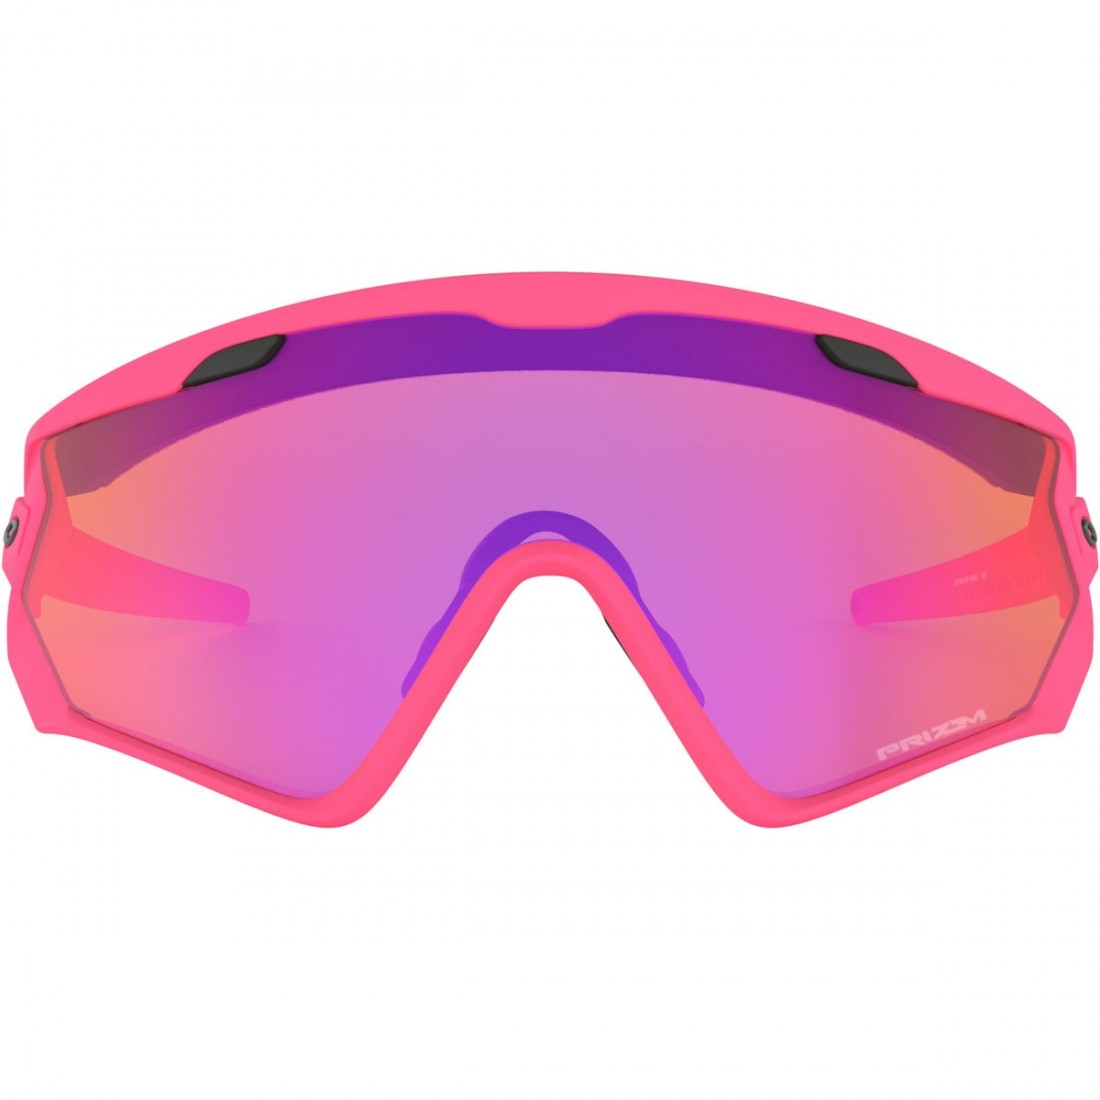 7026c4ff71 OAKLEY Wind Jacket 2.0 Matte Neon Pink   Prizm Trail Mask   Goggle ...